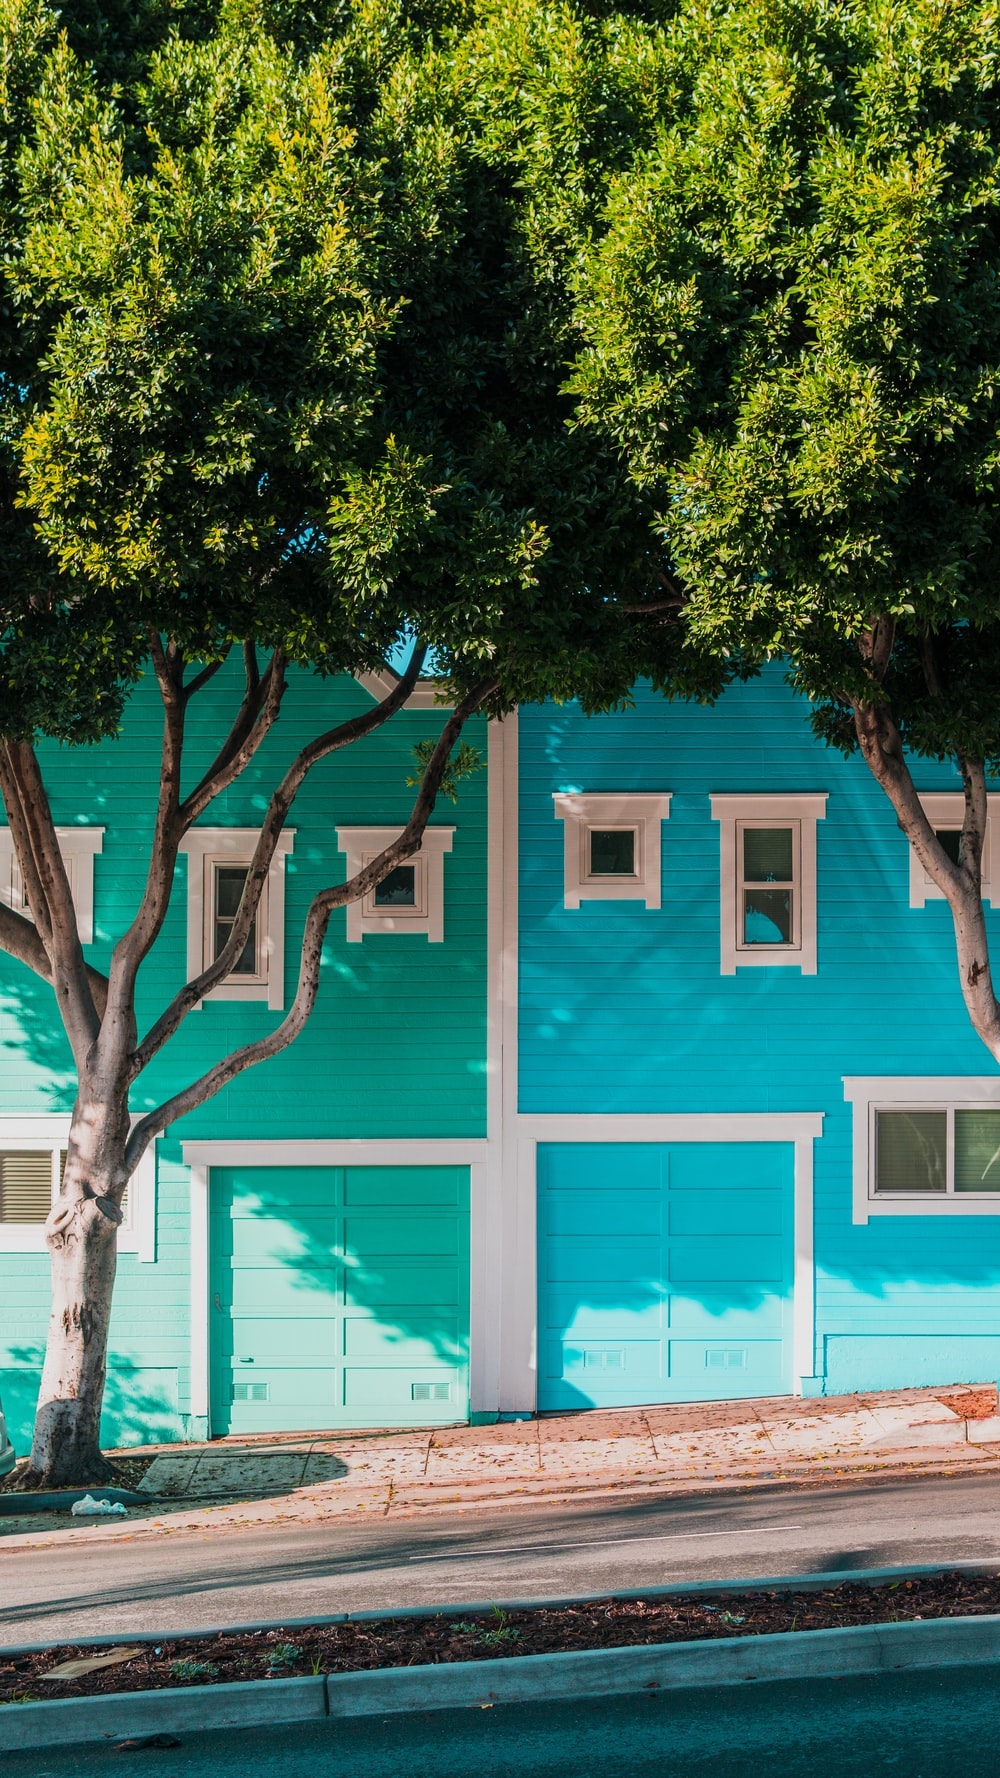 green and blue houses beside trees on sidewalk